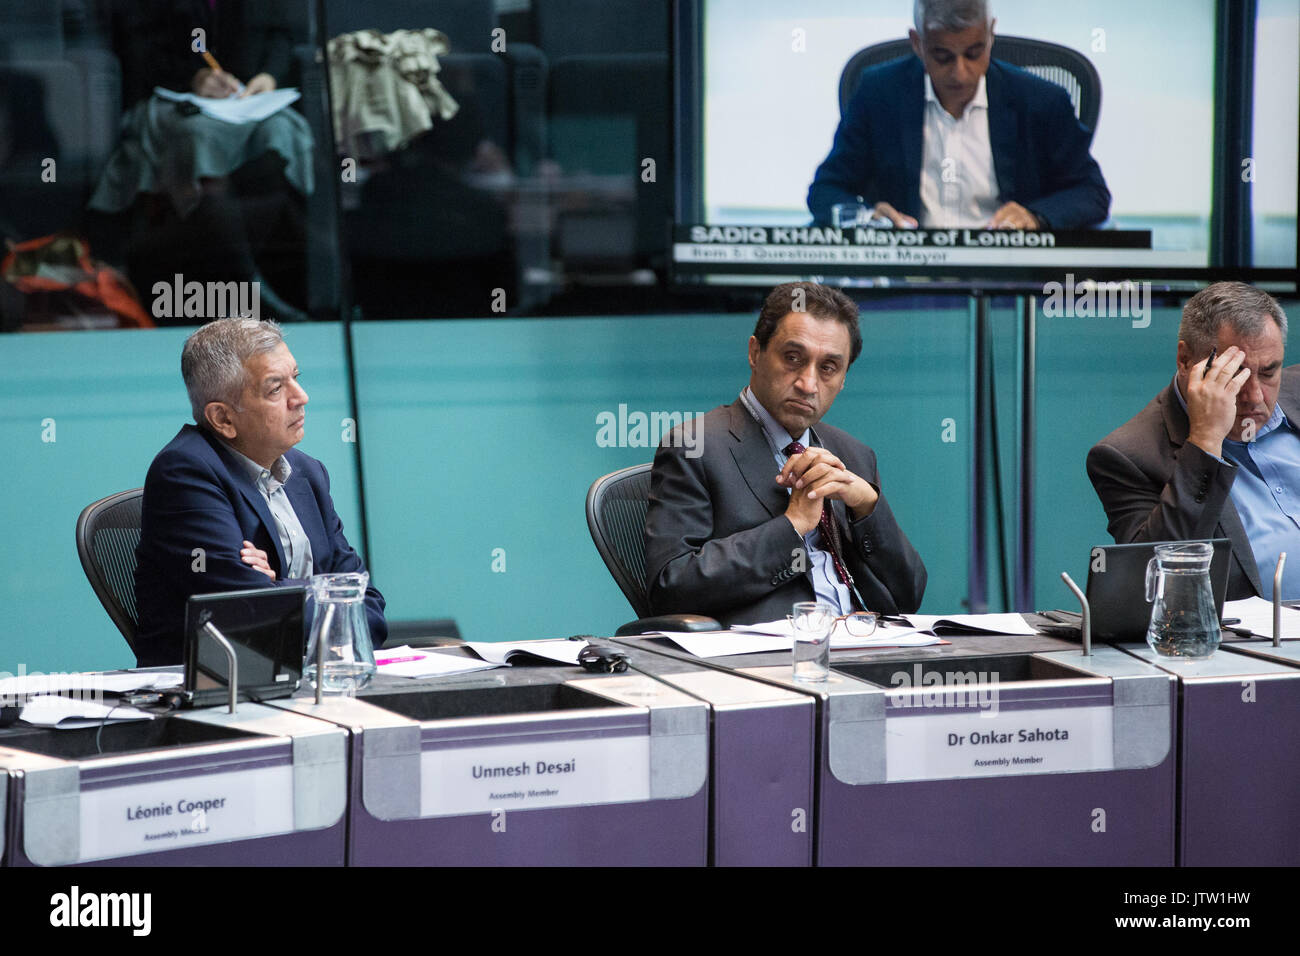 London, UK. 10th August, 2017. London Assembly Members Unmesh Desai, Dr Onkar Sahota and Len Duvall listen to Mayor of London Sadiq Khan responding to questions during Mayor's Question Time at City Hall. Among topics discussed were: acid attacks, social housing, expenditure on fire and police services, 4G coverage on underground trains and noise from overnight underground trains. Credit: Mark Kerrison/Alamy Live News - Stock Image